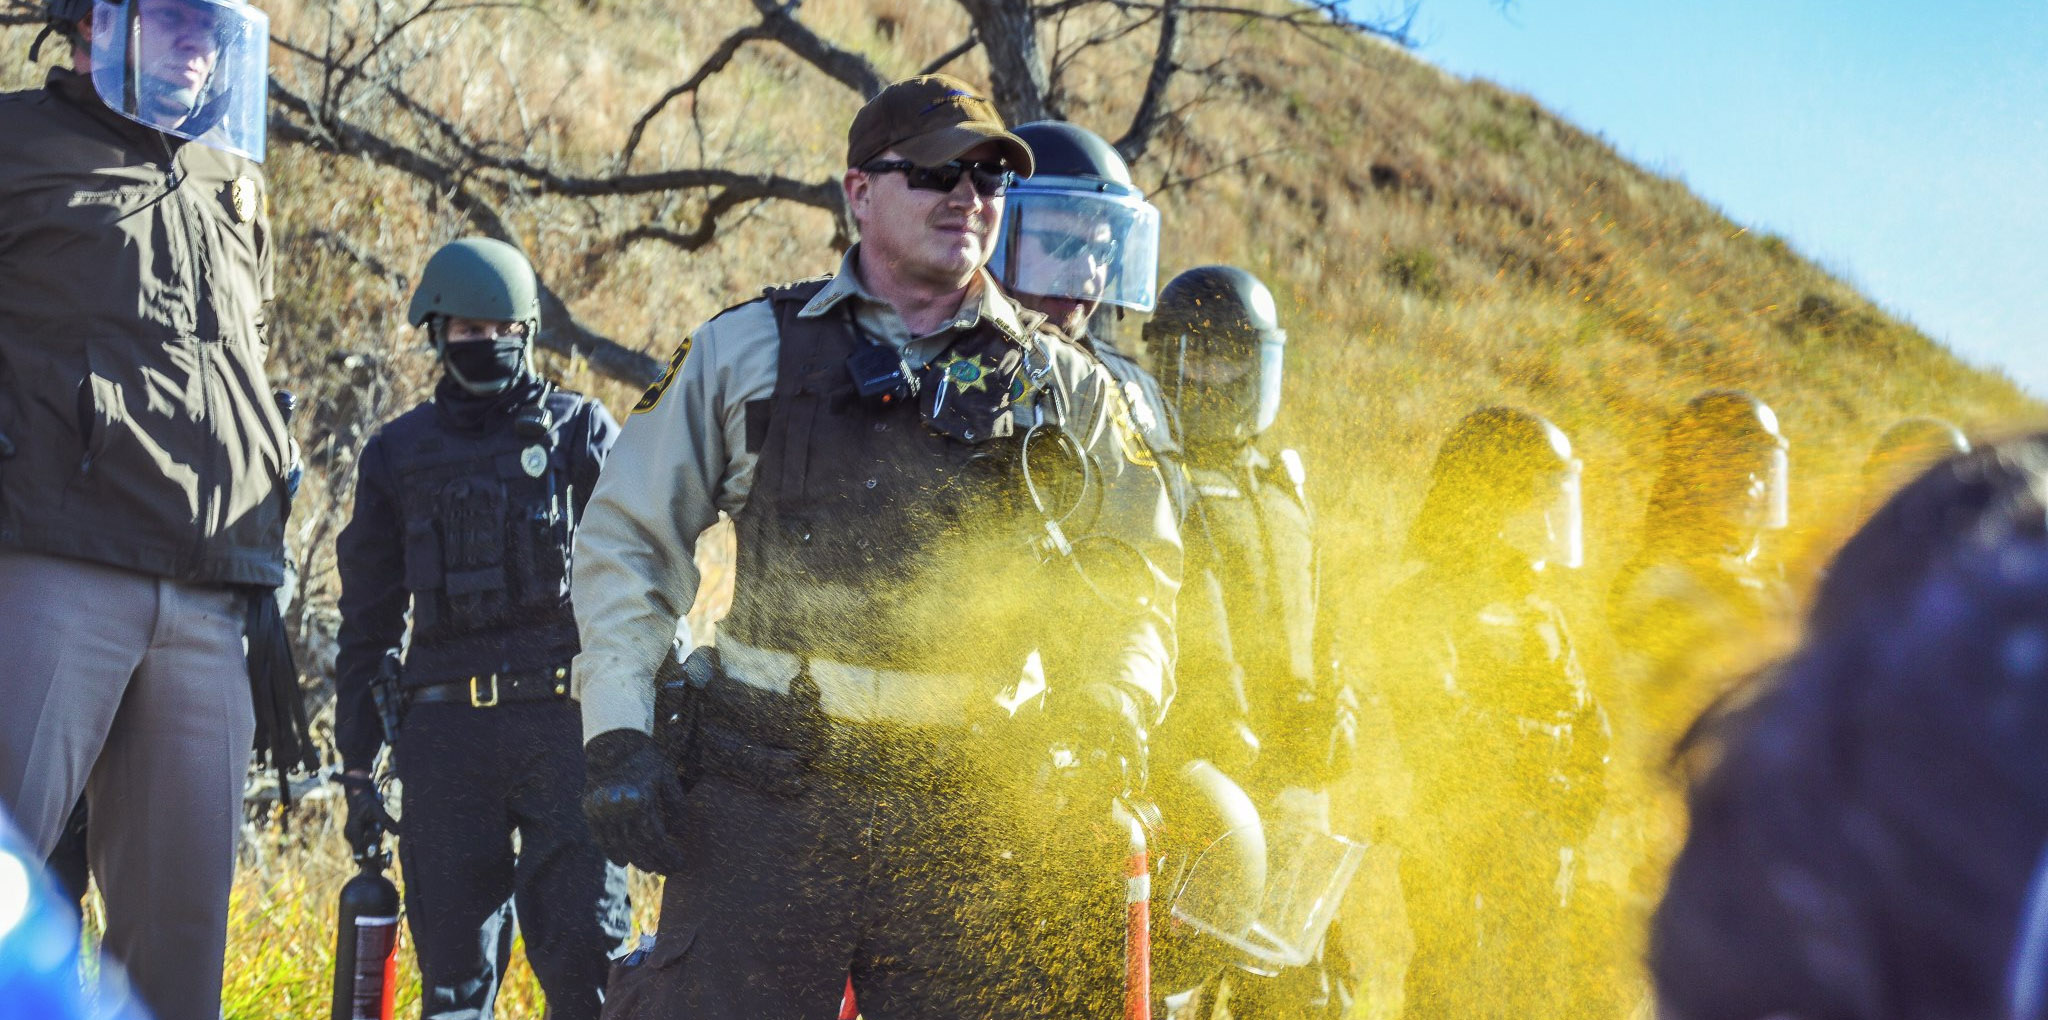 Morton County Police Deploying Tear Gas On A Group Of Indigenous Activists Engaged In Prayer © Rob Wilson Photography